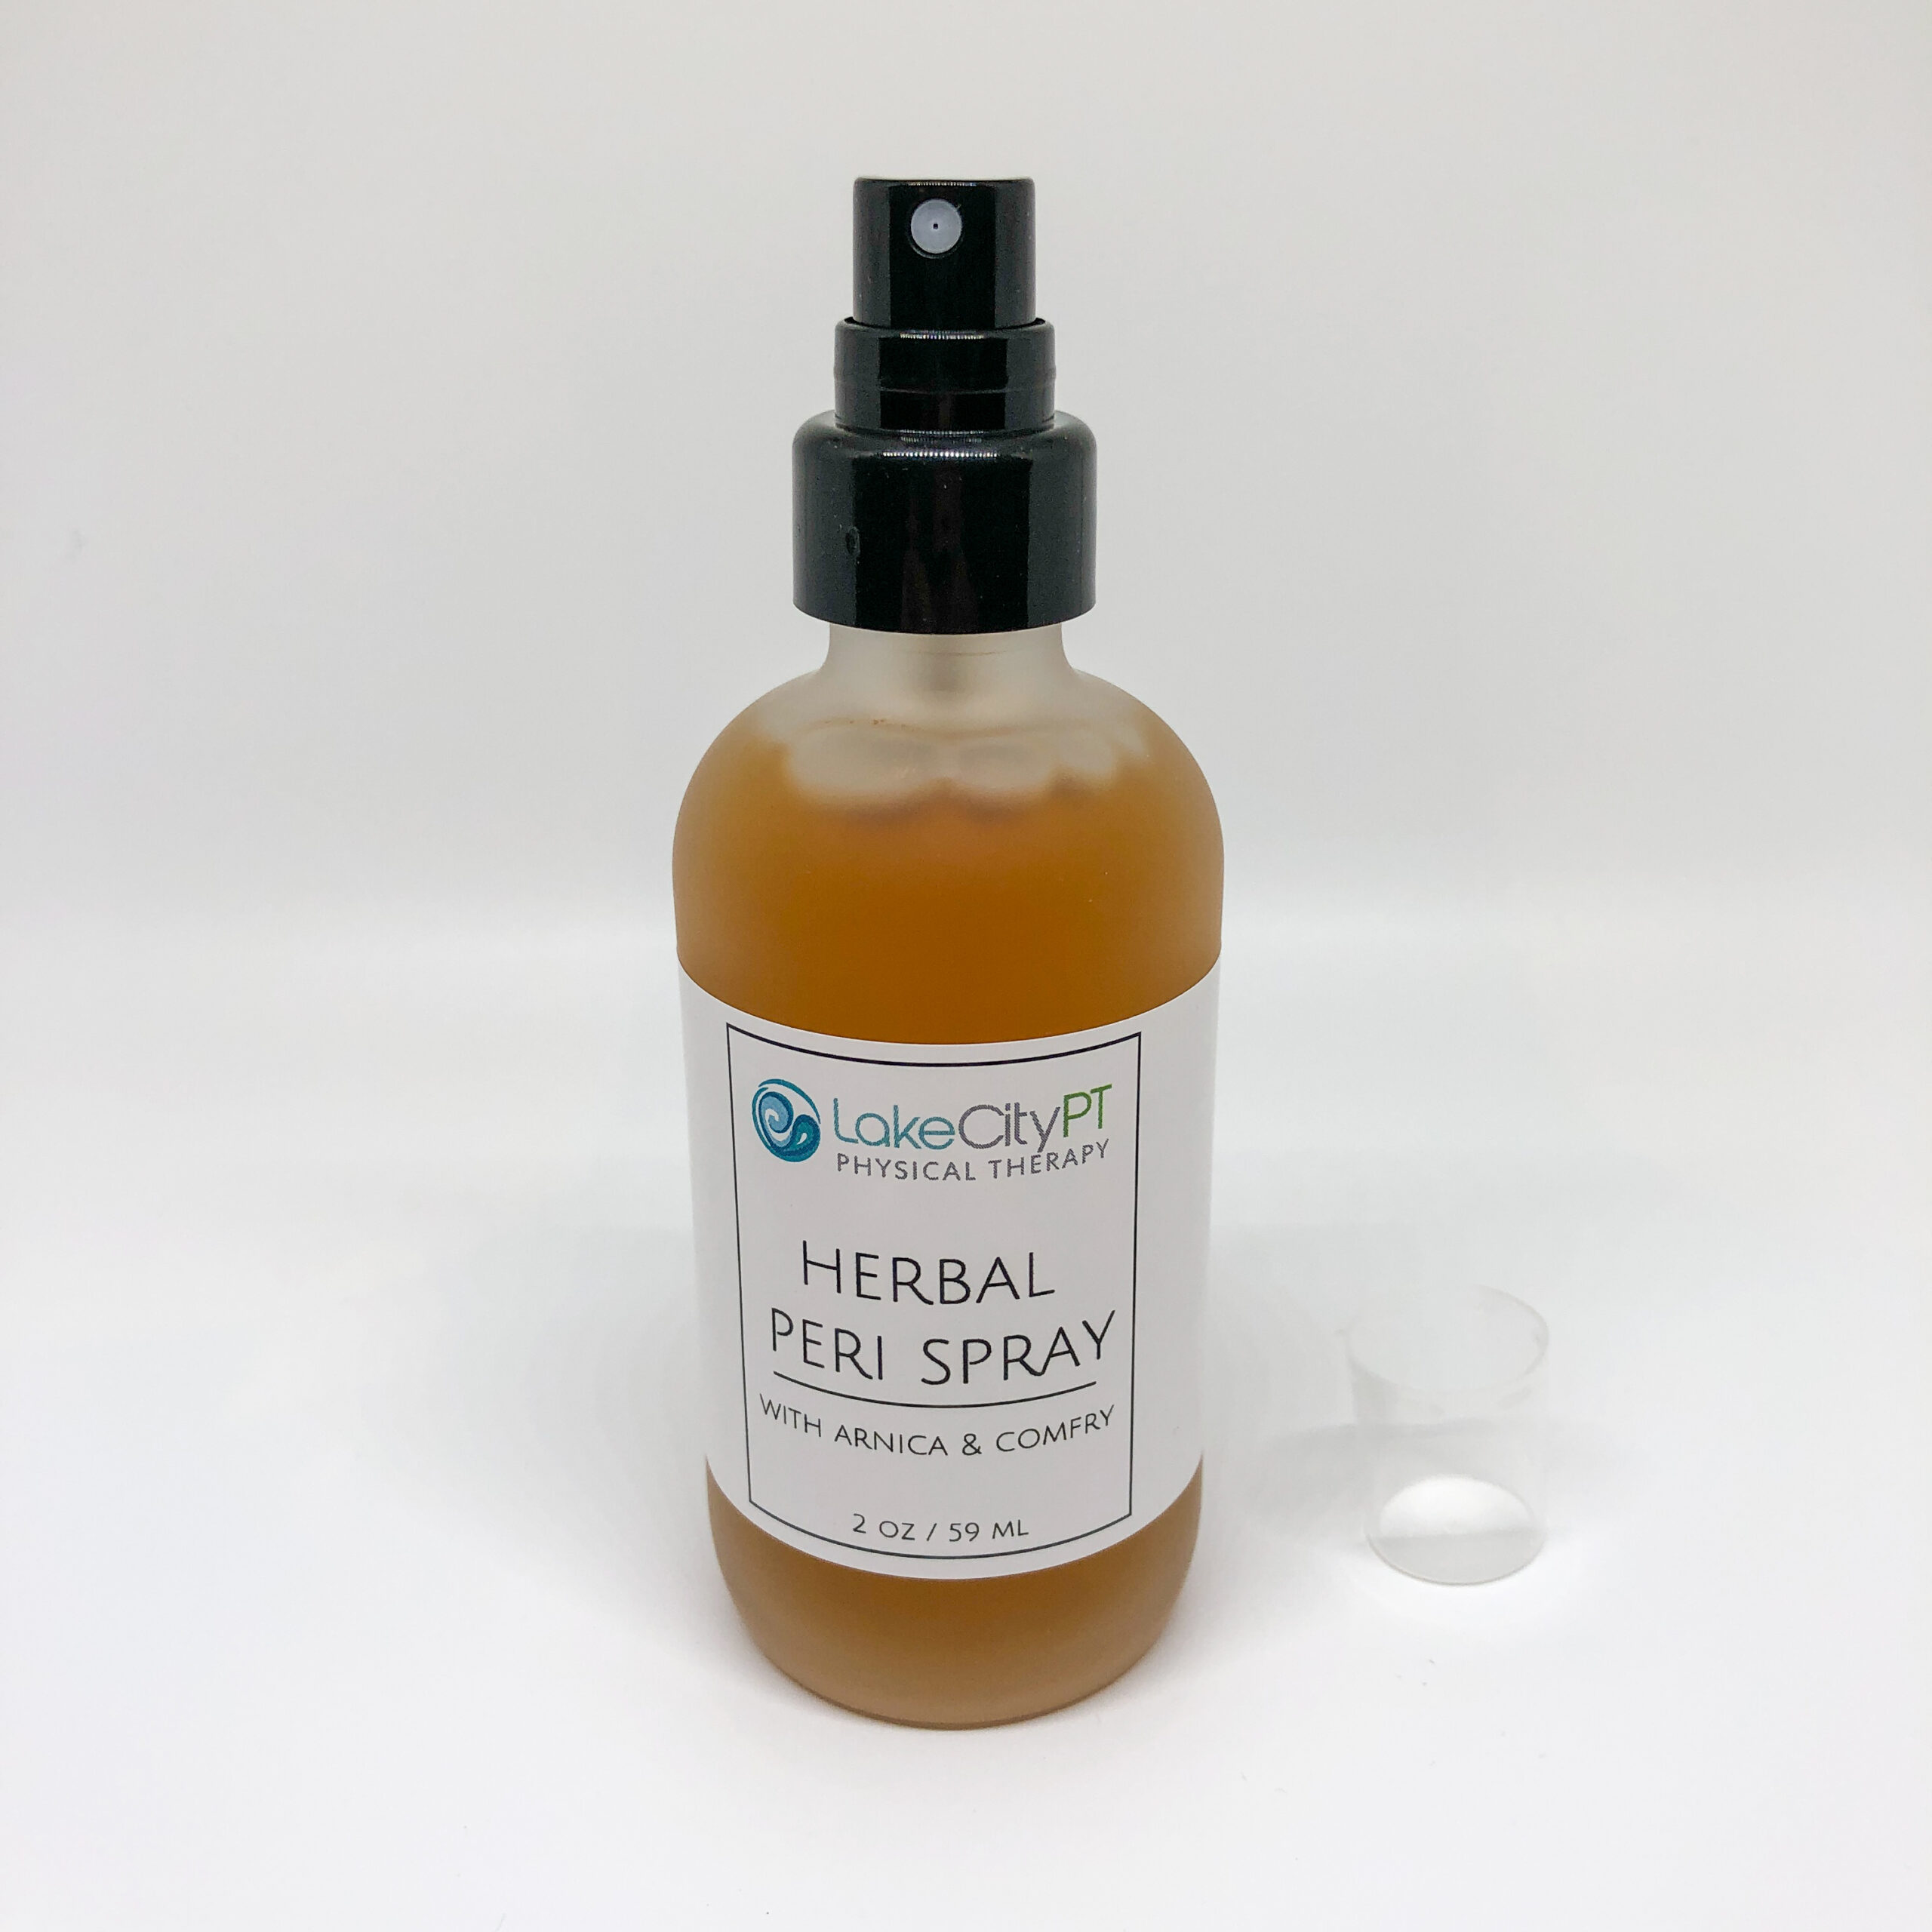 Herbal Perineal Spray lake city pt